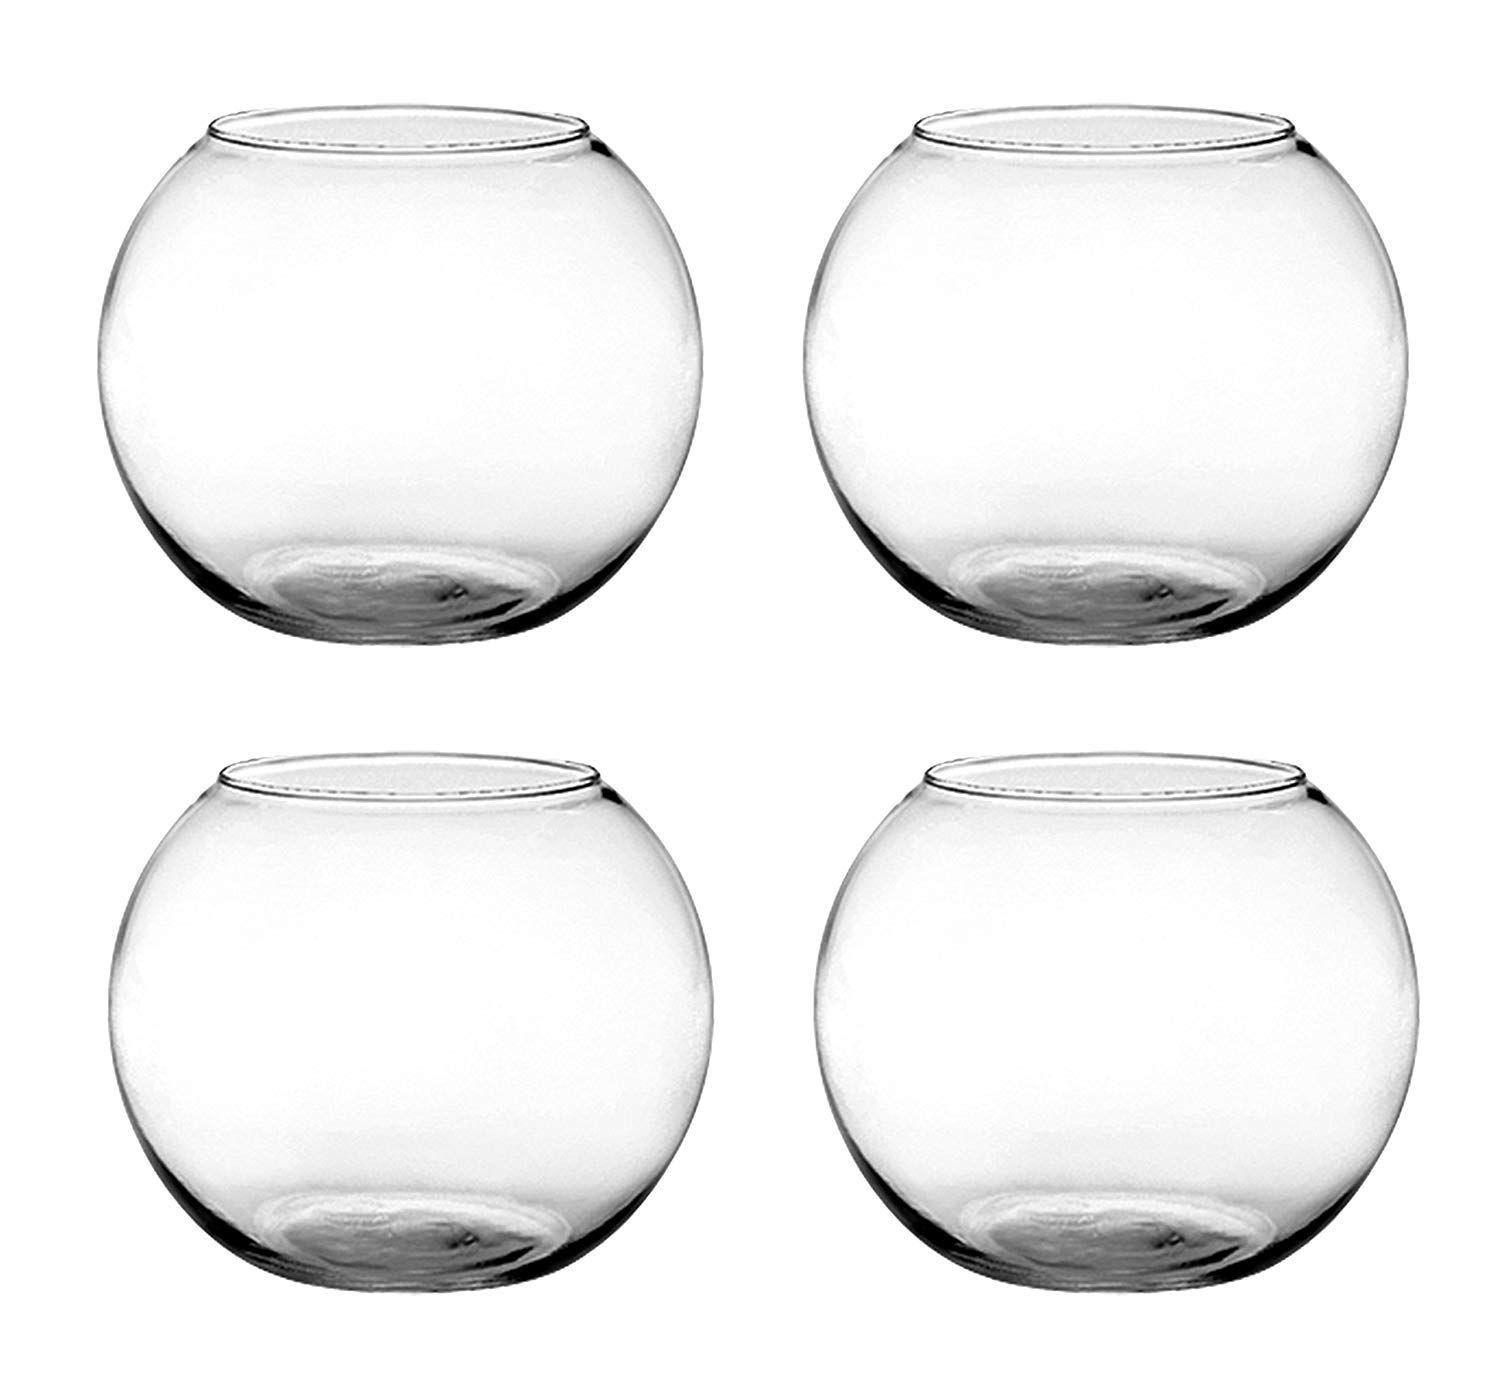 giant clear glass vase of 32 wide mouth vase the weekly world with regard to amazon syndicate sales 6 rose bowl clear planters garden